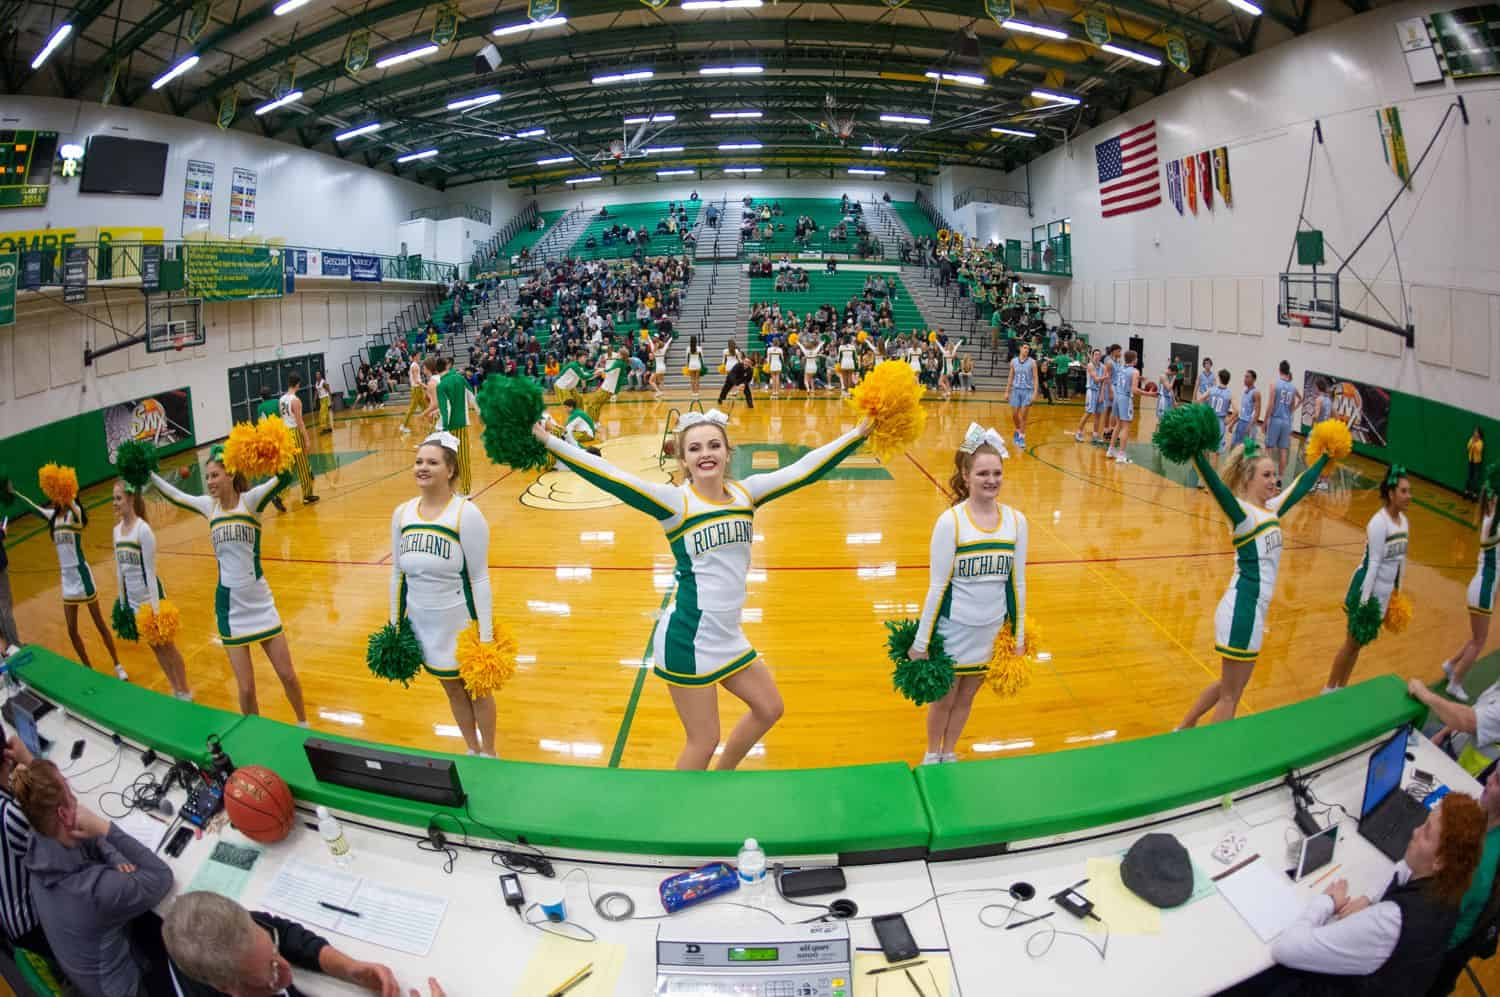 A wide angle lens helps photographer Kim Fetrow capture this image of cheerleaders at a high school basketball game